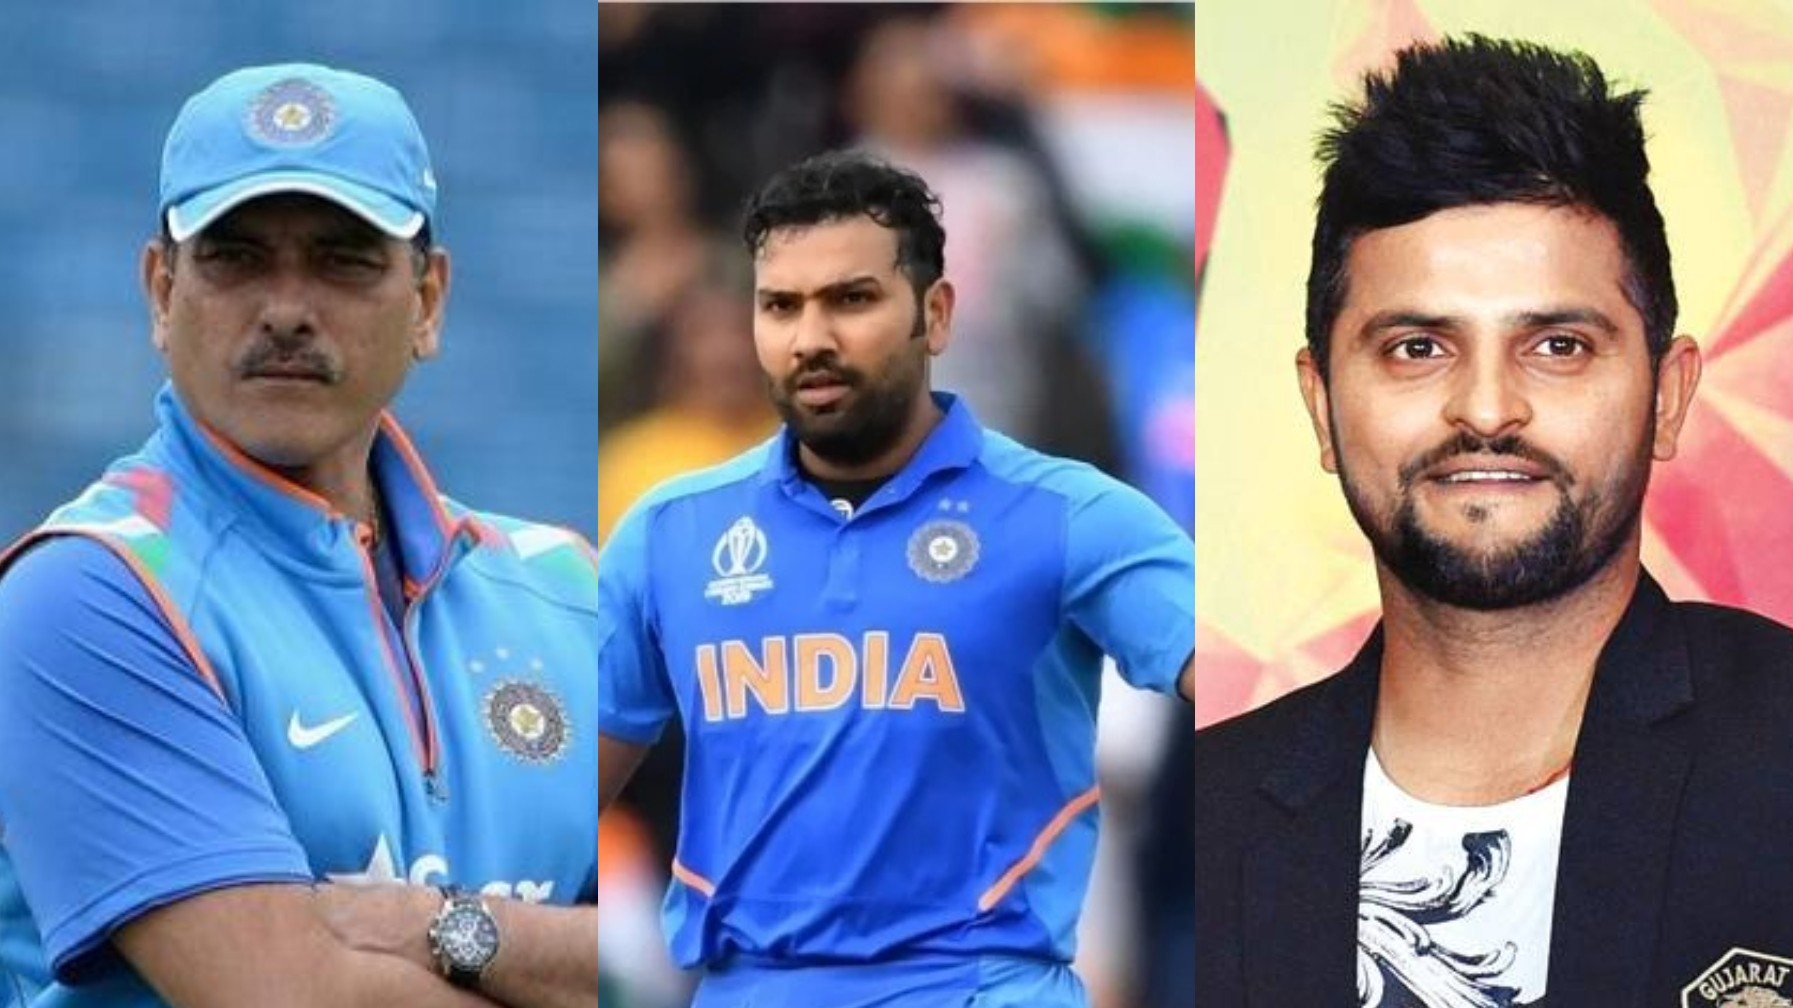 Indian cricket fraternity wishes Rohit Sharma as he celebrates his 33rd birthday